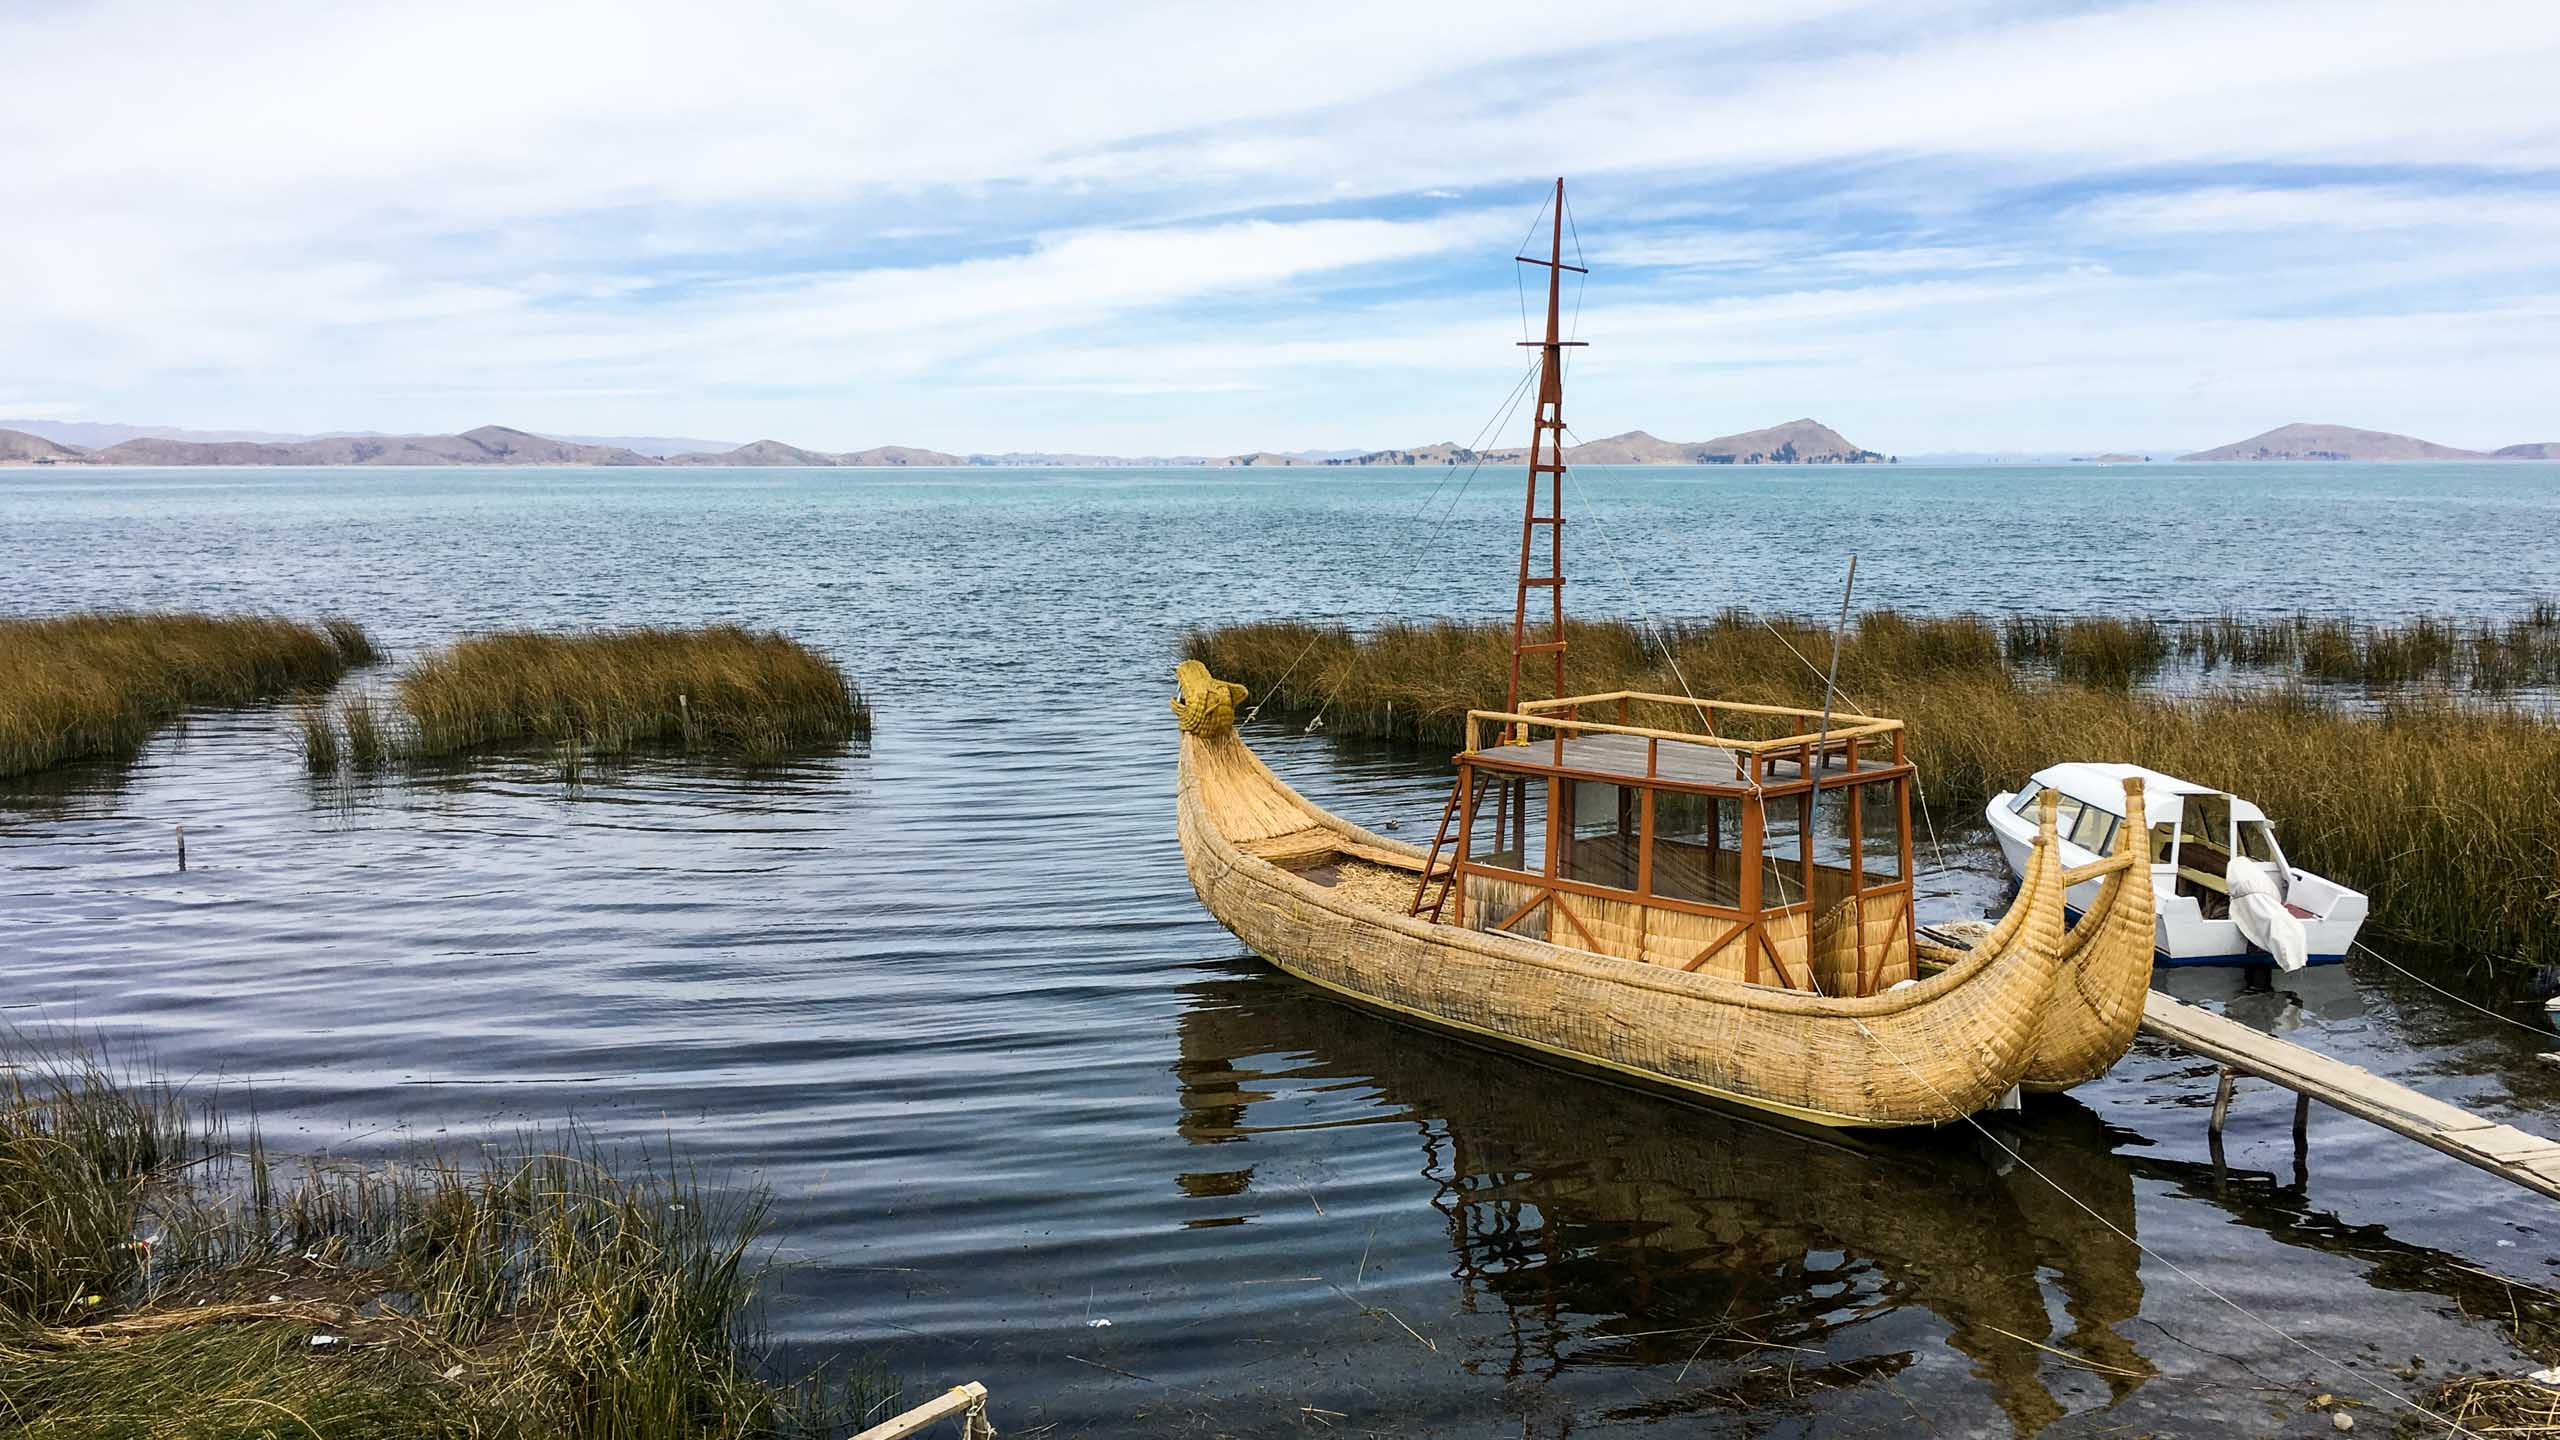 Boat sits on lake in Bolivia